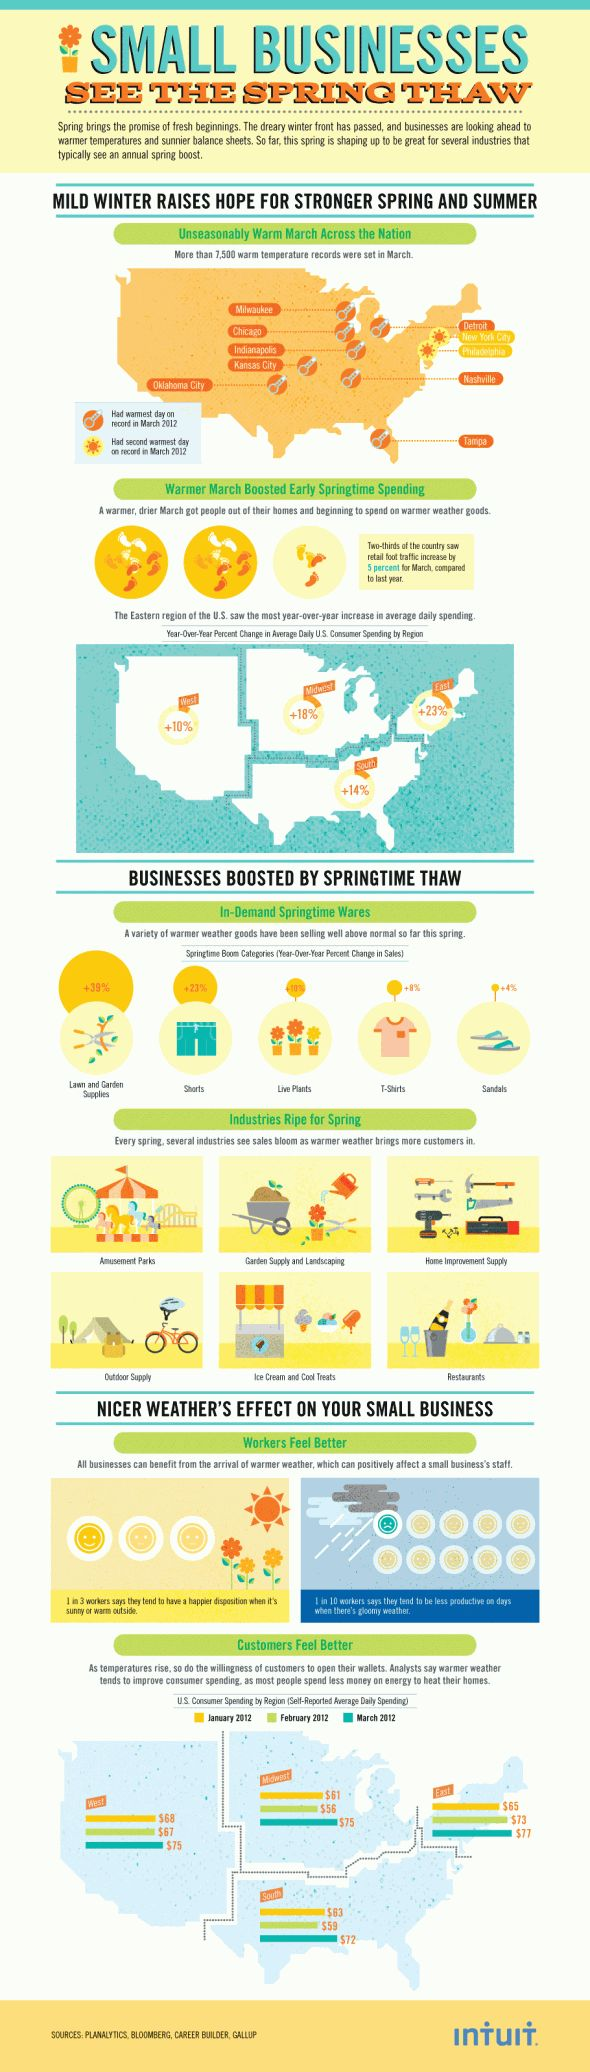 How the Spring Thaw Affects Spending - An unseasonably warm spring is showing signs of increased spending. As the temperatures started warming up, retail foot traffic increased by five percent compared to last year, with every U.S. region seeing a boost in average daily spending. Among the wares to see the greatest sales increase: lawn/garden supplies and shorts.: Thaw Infographic, Business Spring, Businesscashadv Visit, Spring Thaw, Nice Infographic, Small Businesses, Business Resources, Business Cash, Business Infographic